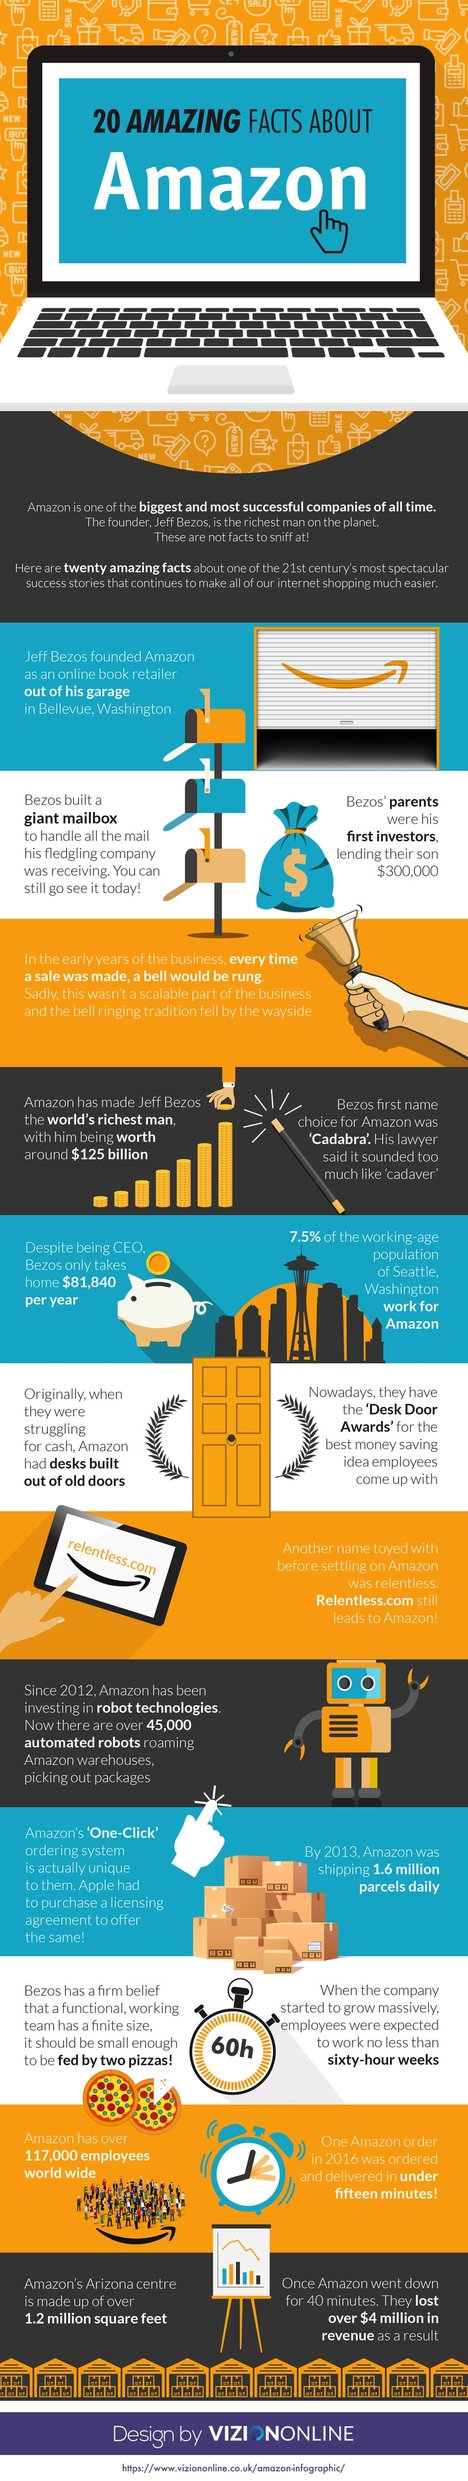 20 Amazing Facts About Amazon